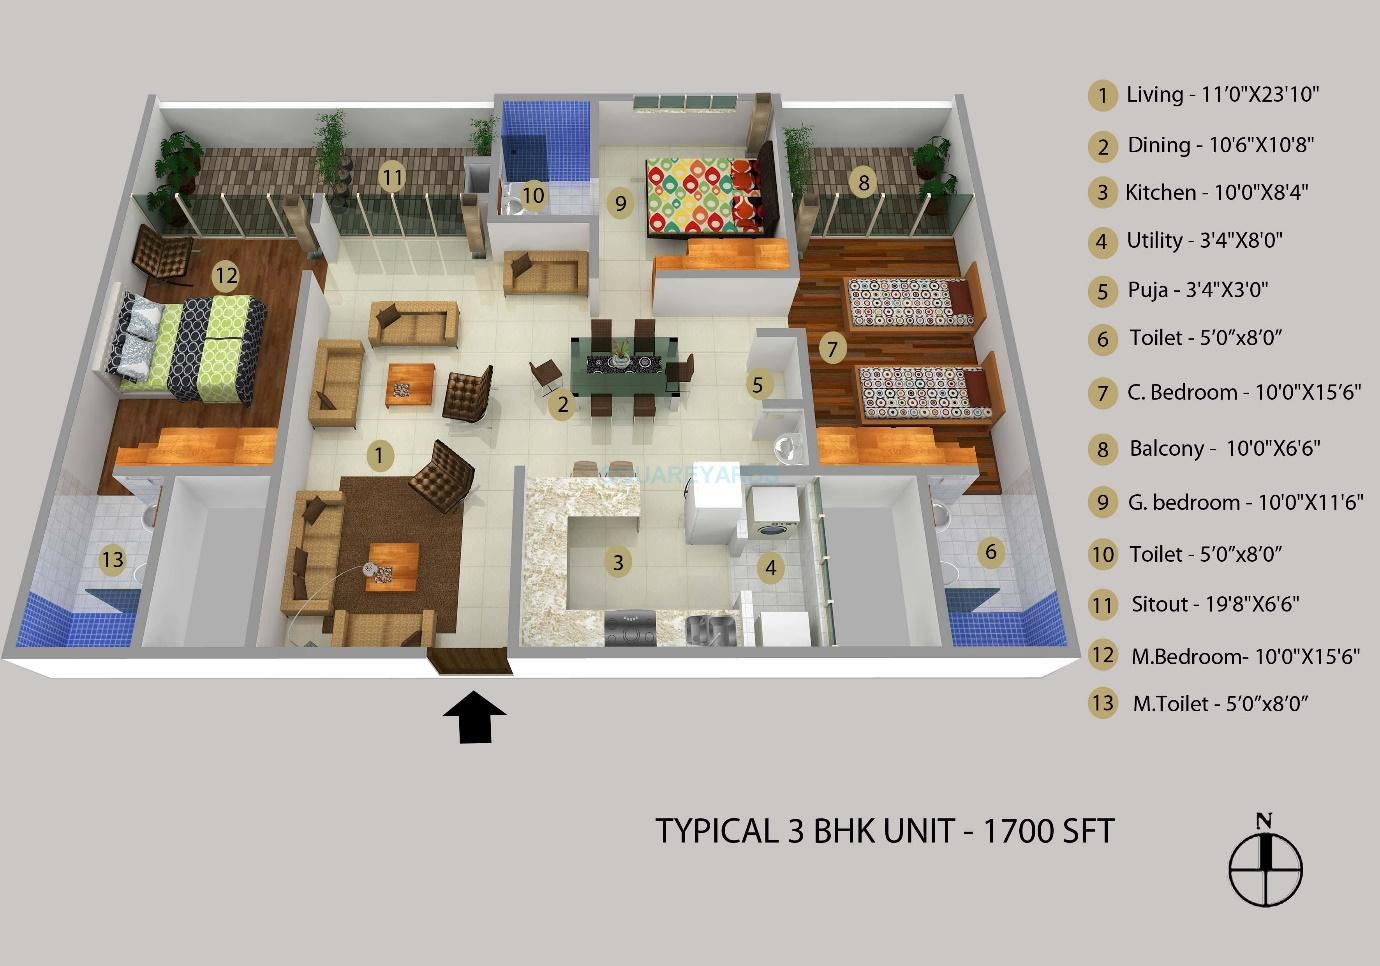 3 BHK 1700 Sq. Ft. Apartment for Sale in Samruddhi Winter Green at Rs  4600/Sq. Ft, Bangalore